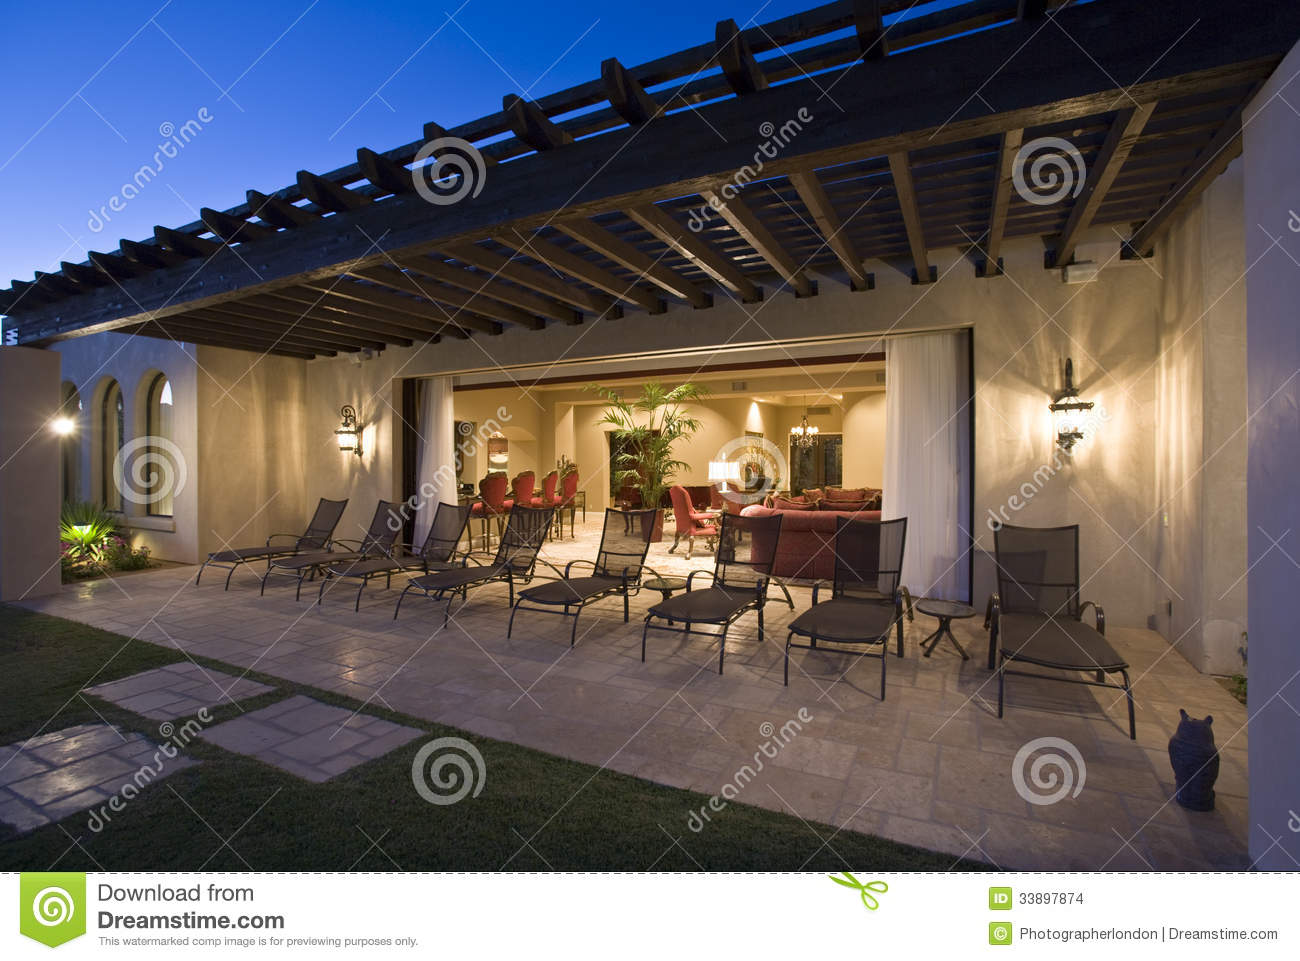 Deckchairs on patio outside house stock photo image of outdoors